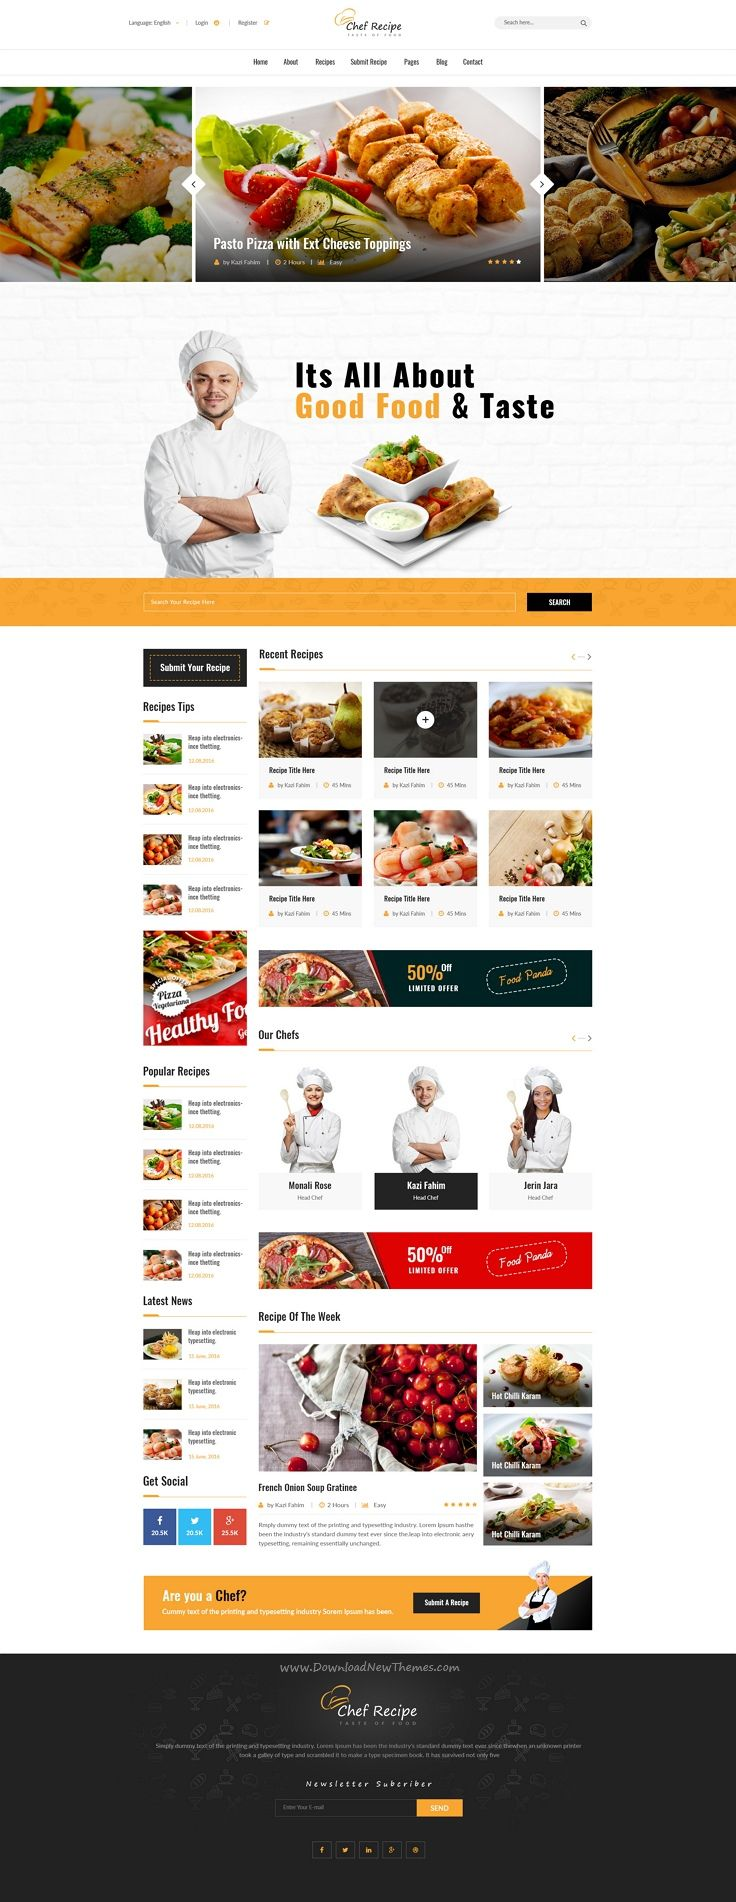 Chef Recipe Is Perfect Premium 3 In 1 PSD Template Designed For Cafe And Recipes Website Download Now